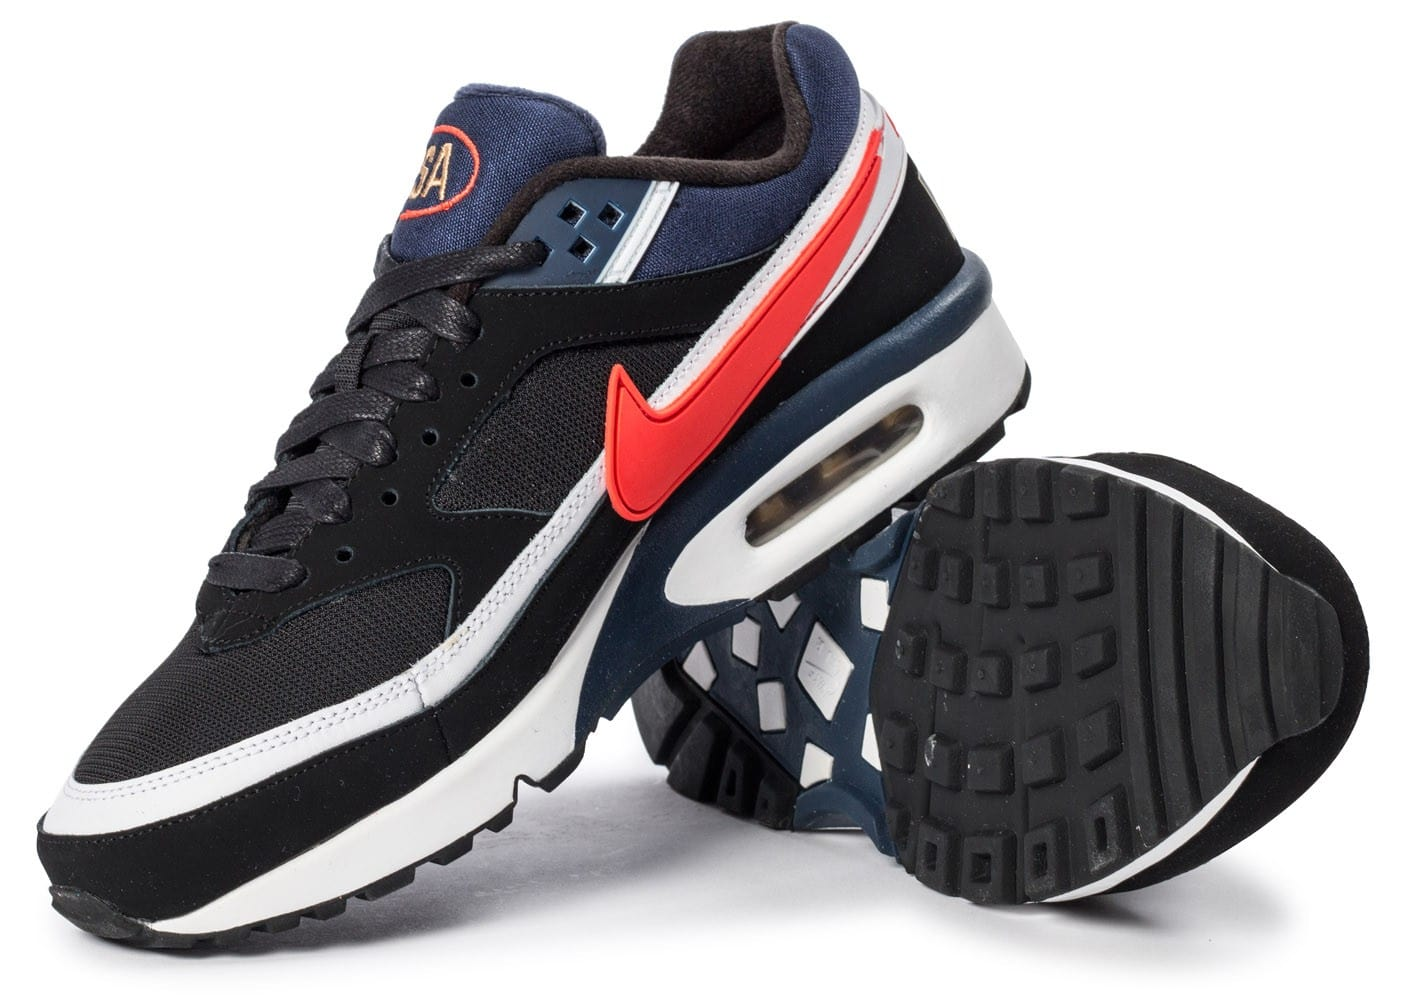 Olympic Bw Baskets Chaussures Usa Homme Air Max Chausport Nike tqxf7PBx